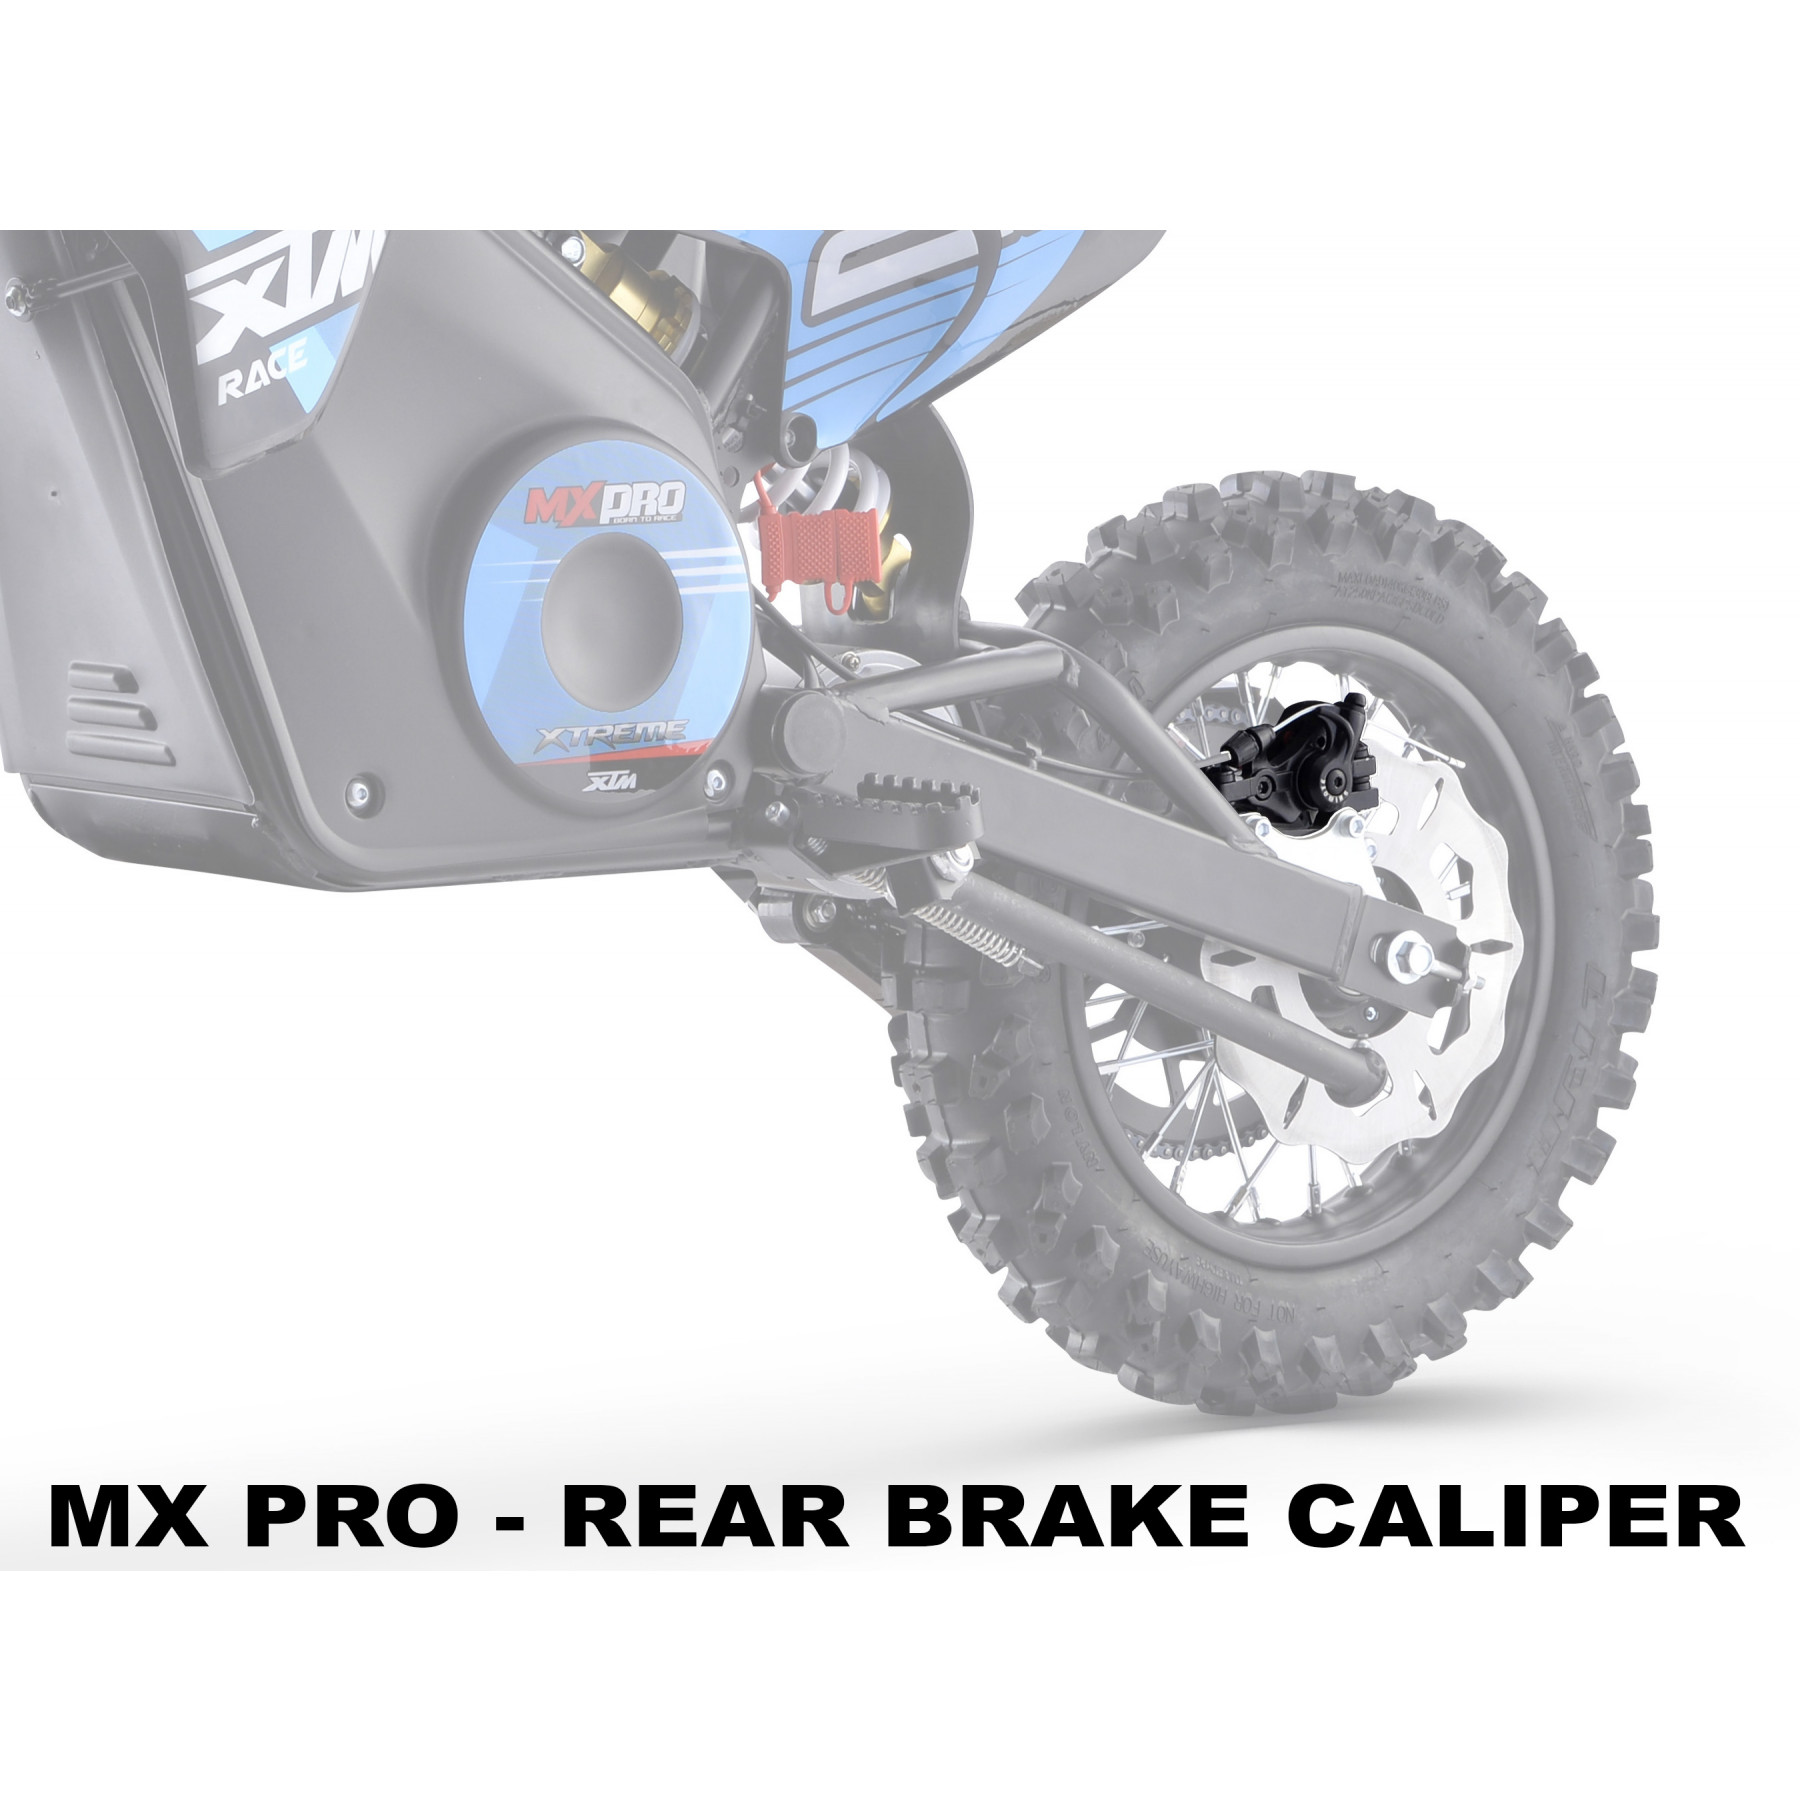 XTREME ELECTRIC XTM MX-PRO 36V REPLACEMENT REAR BRAKE CALIPER